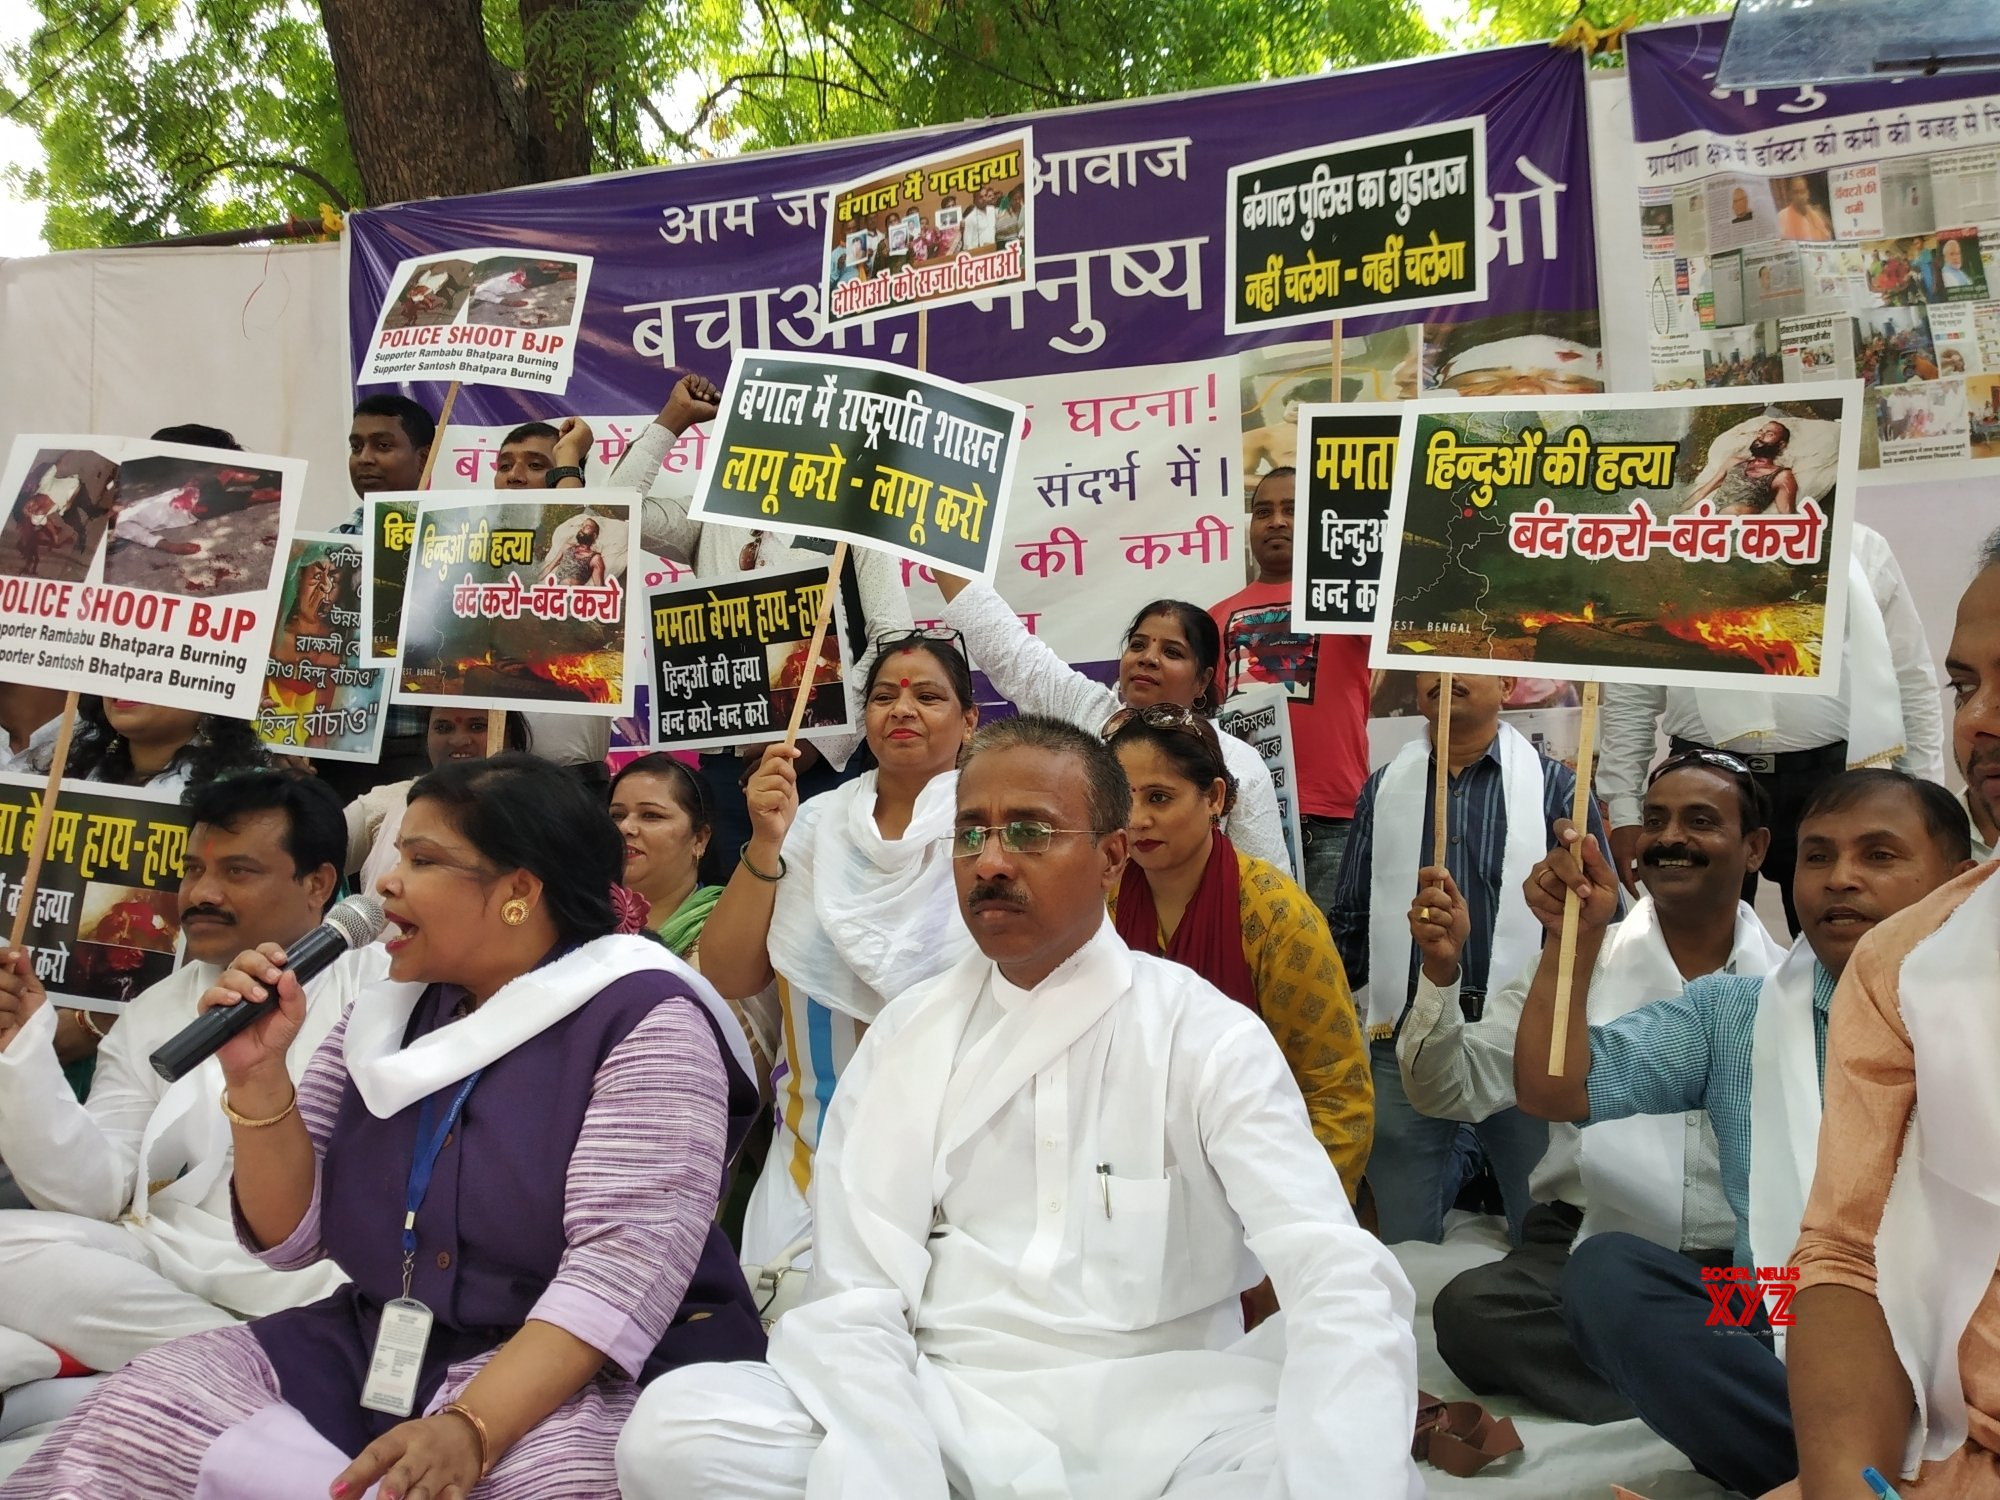 New Delhi: Protest against Mamata Banerjee #Gallery - Social